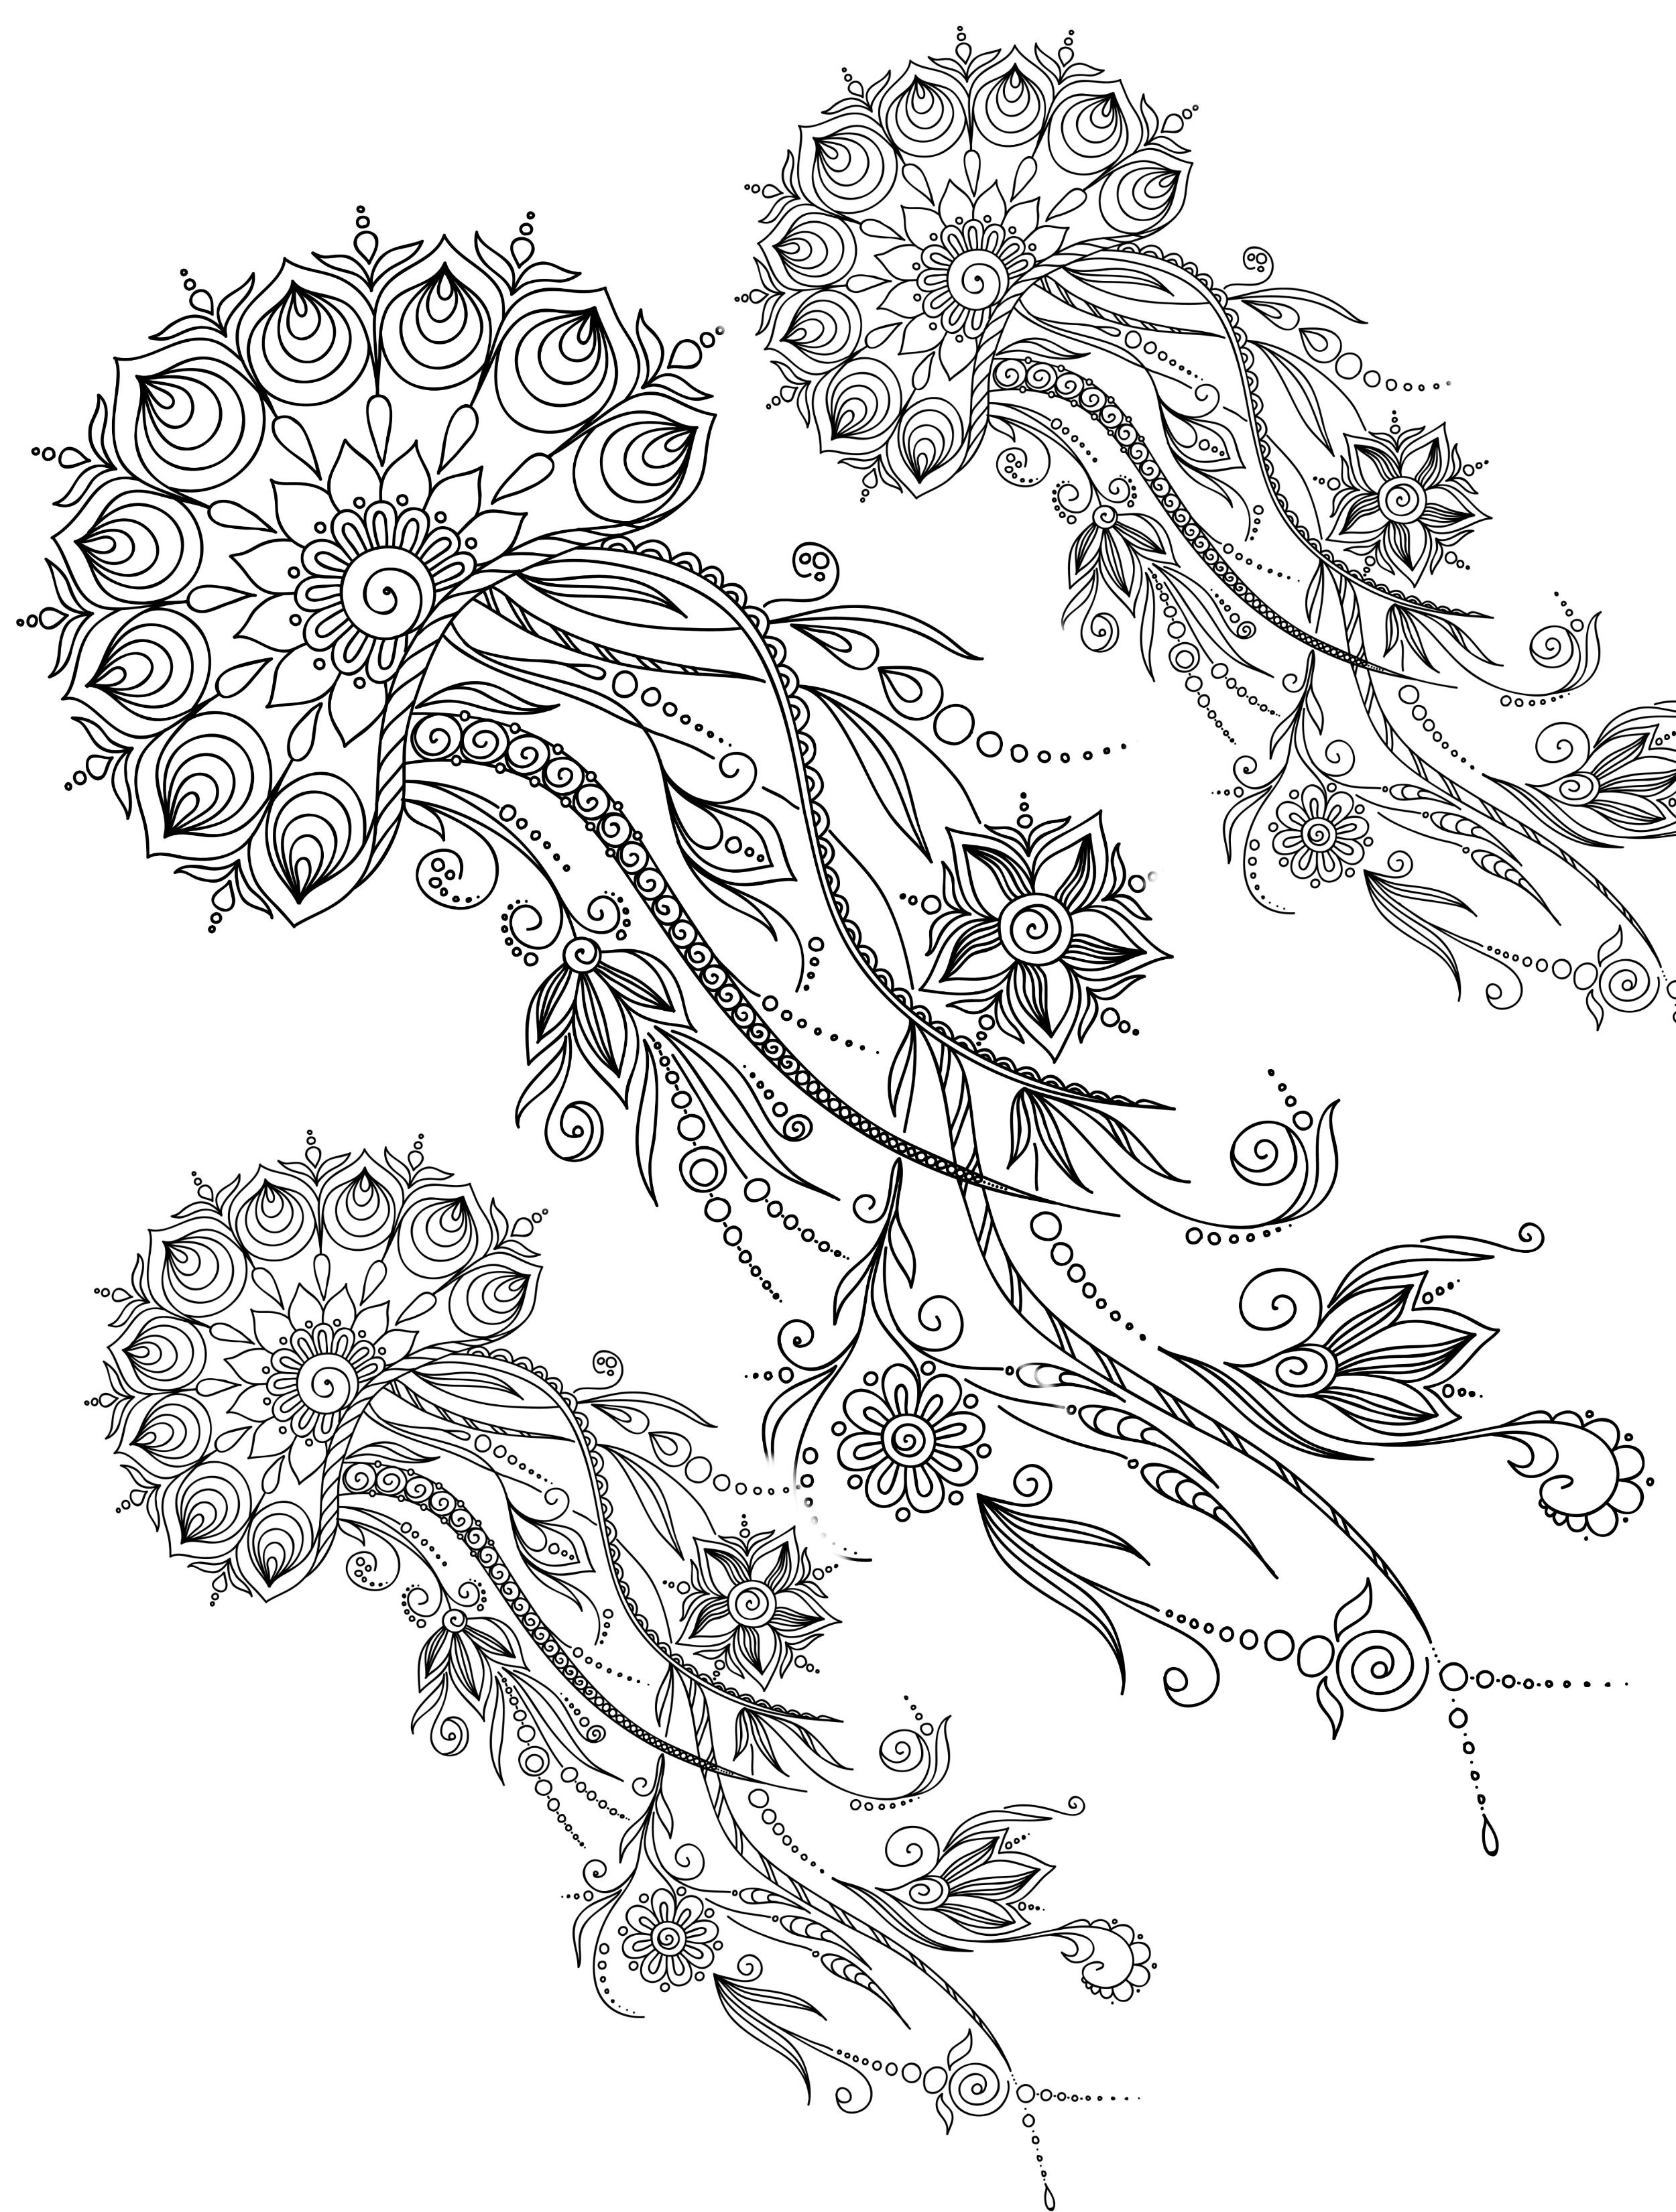 20 Gorgeous Free Printable Adult Coloring Pages | Modell | Pinterest ...